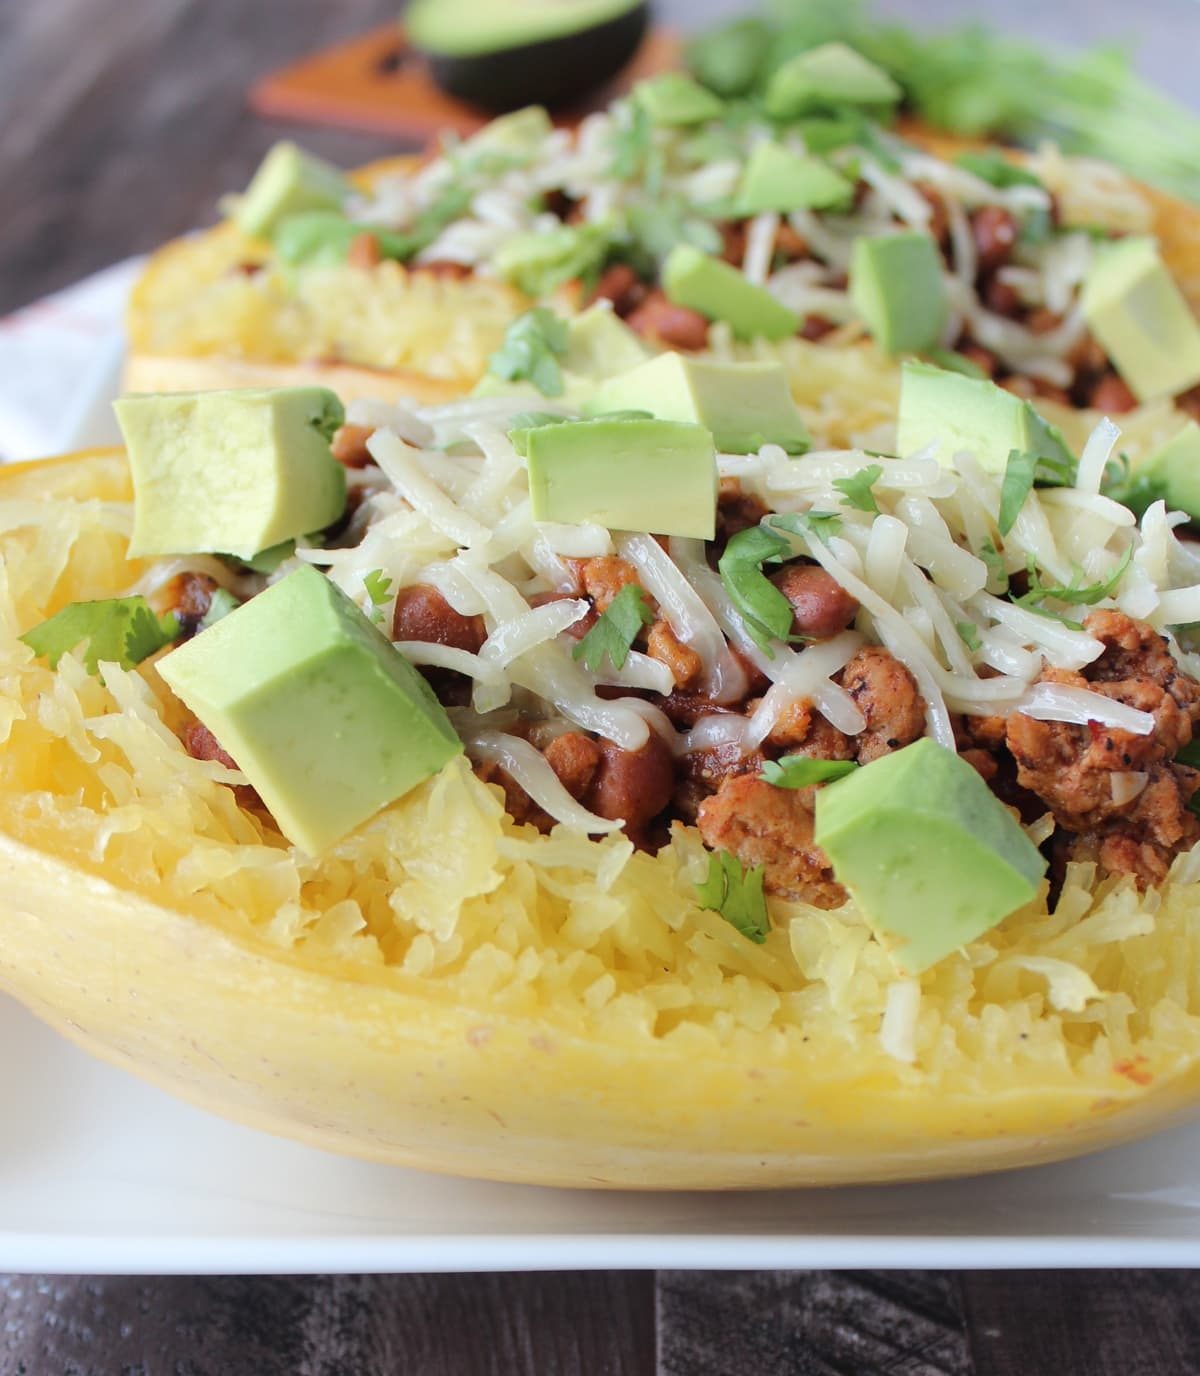 Turkey Chili Stuffed Spaghetti Squash Recipe